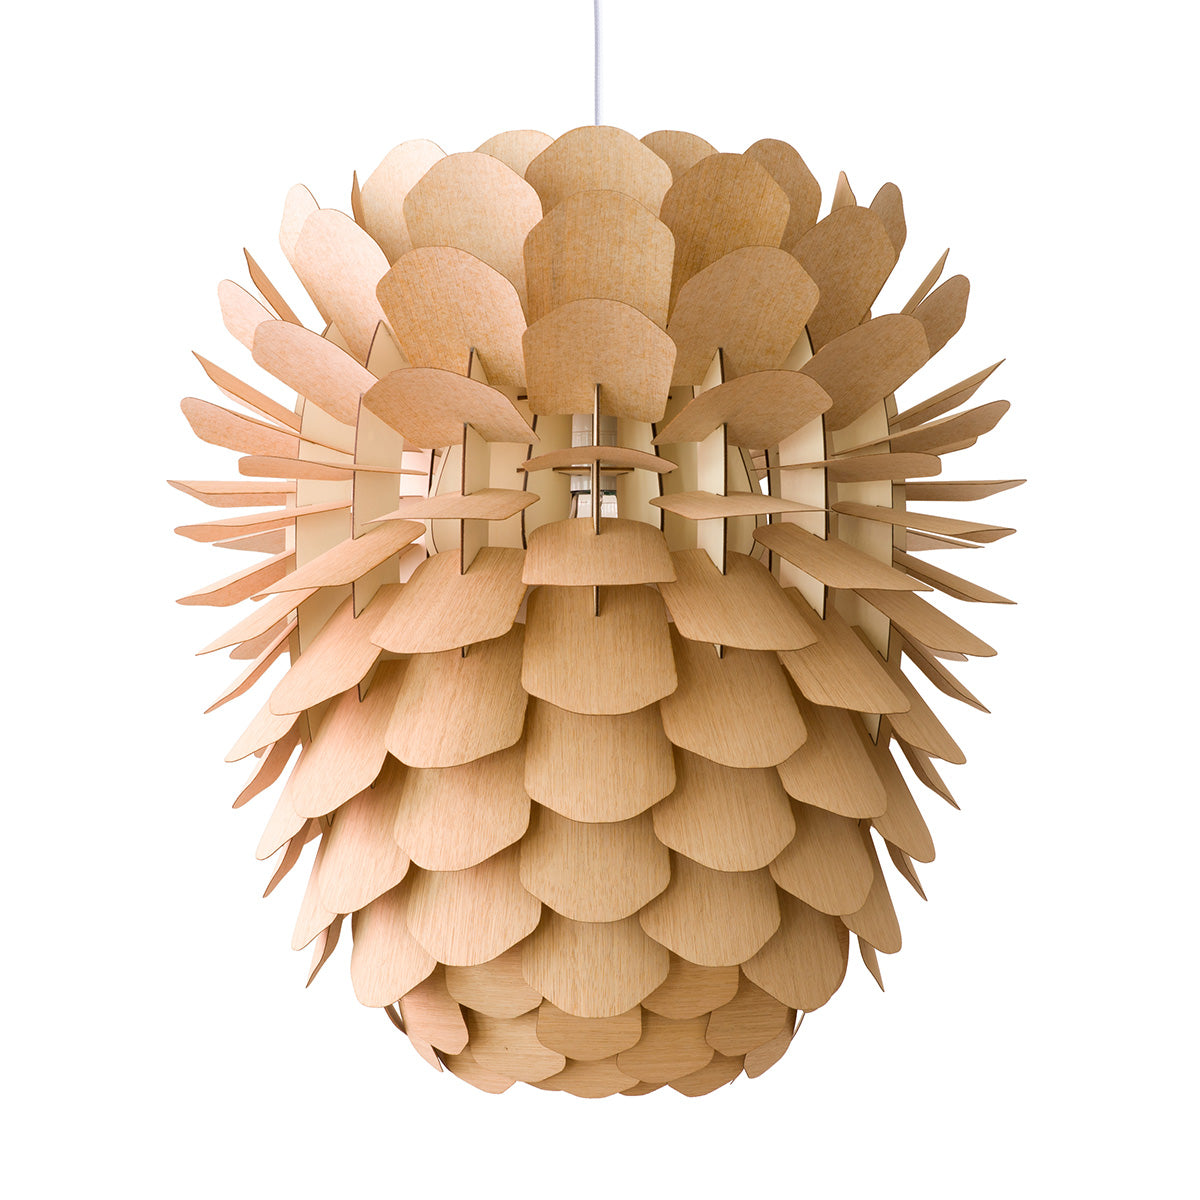 Schneid - Schneid Lighting - Schneid Zappy Lamp Small - Niklas Jessen - Sustainable Design  - German Design - Lighting - Oak | Sustainable Living | Simple Design